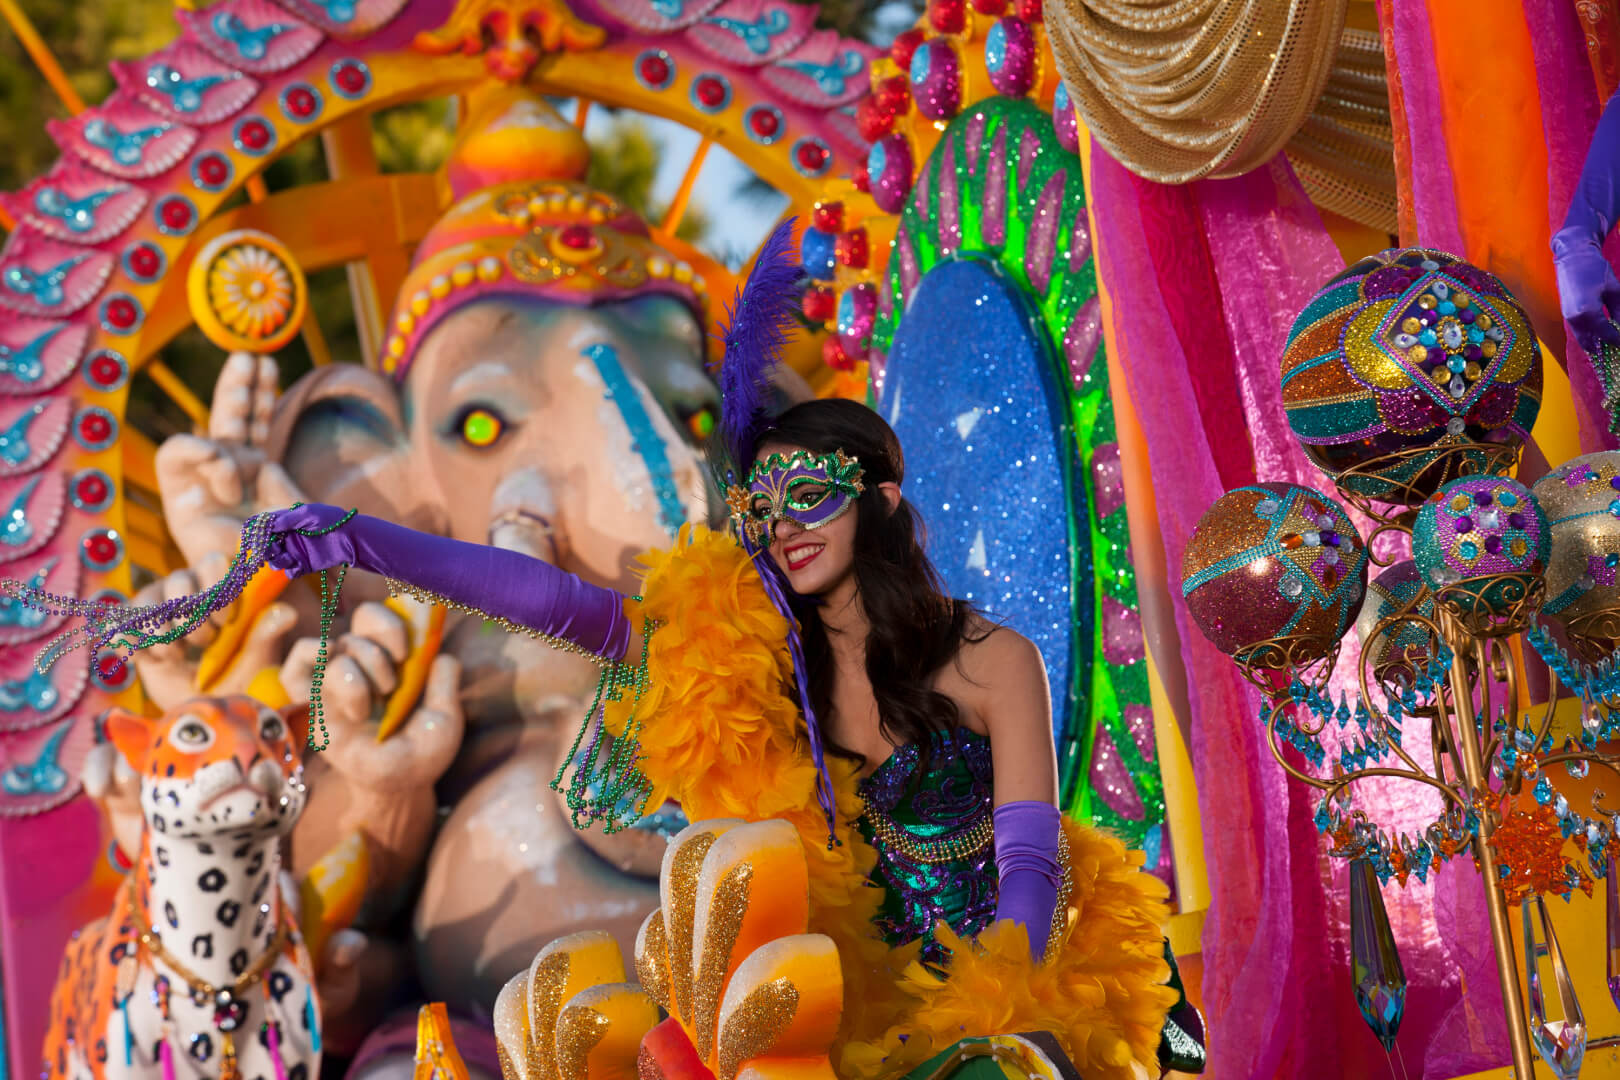 Universal Orlando shows off four new Mardi Gras floats, joined by